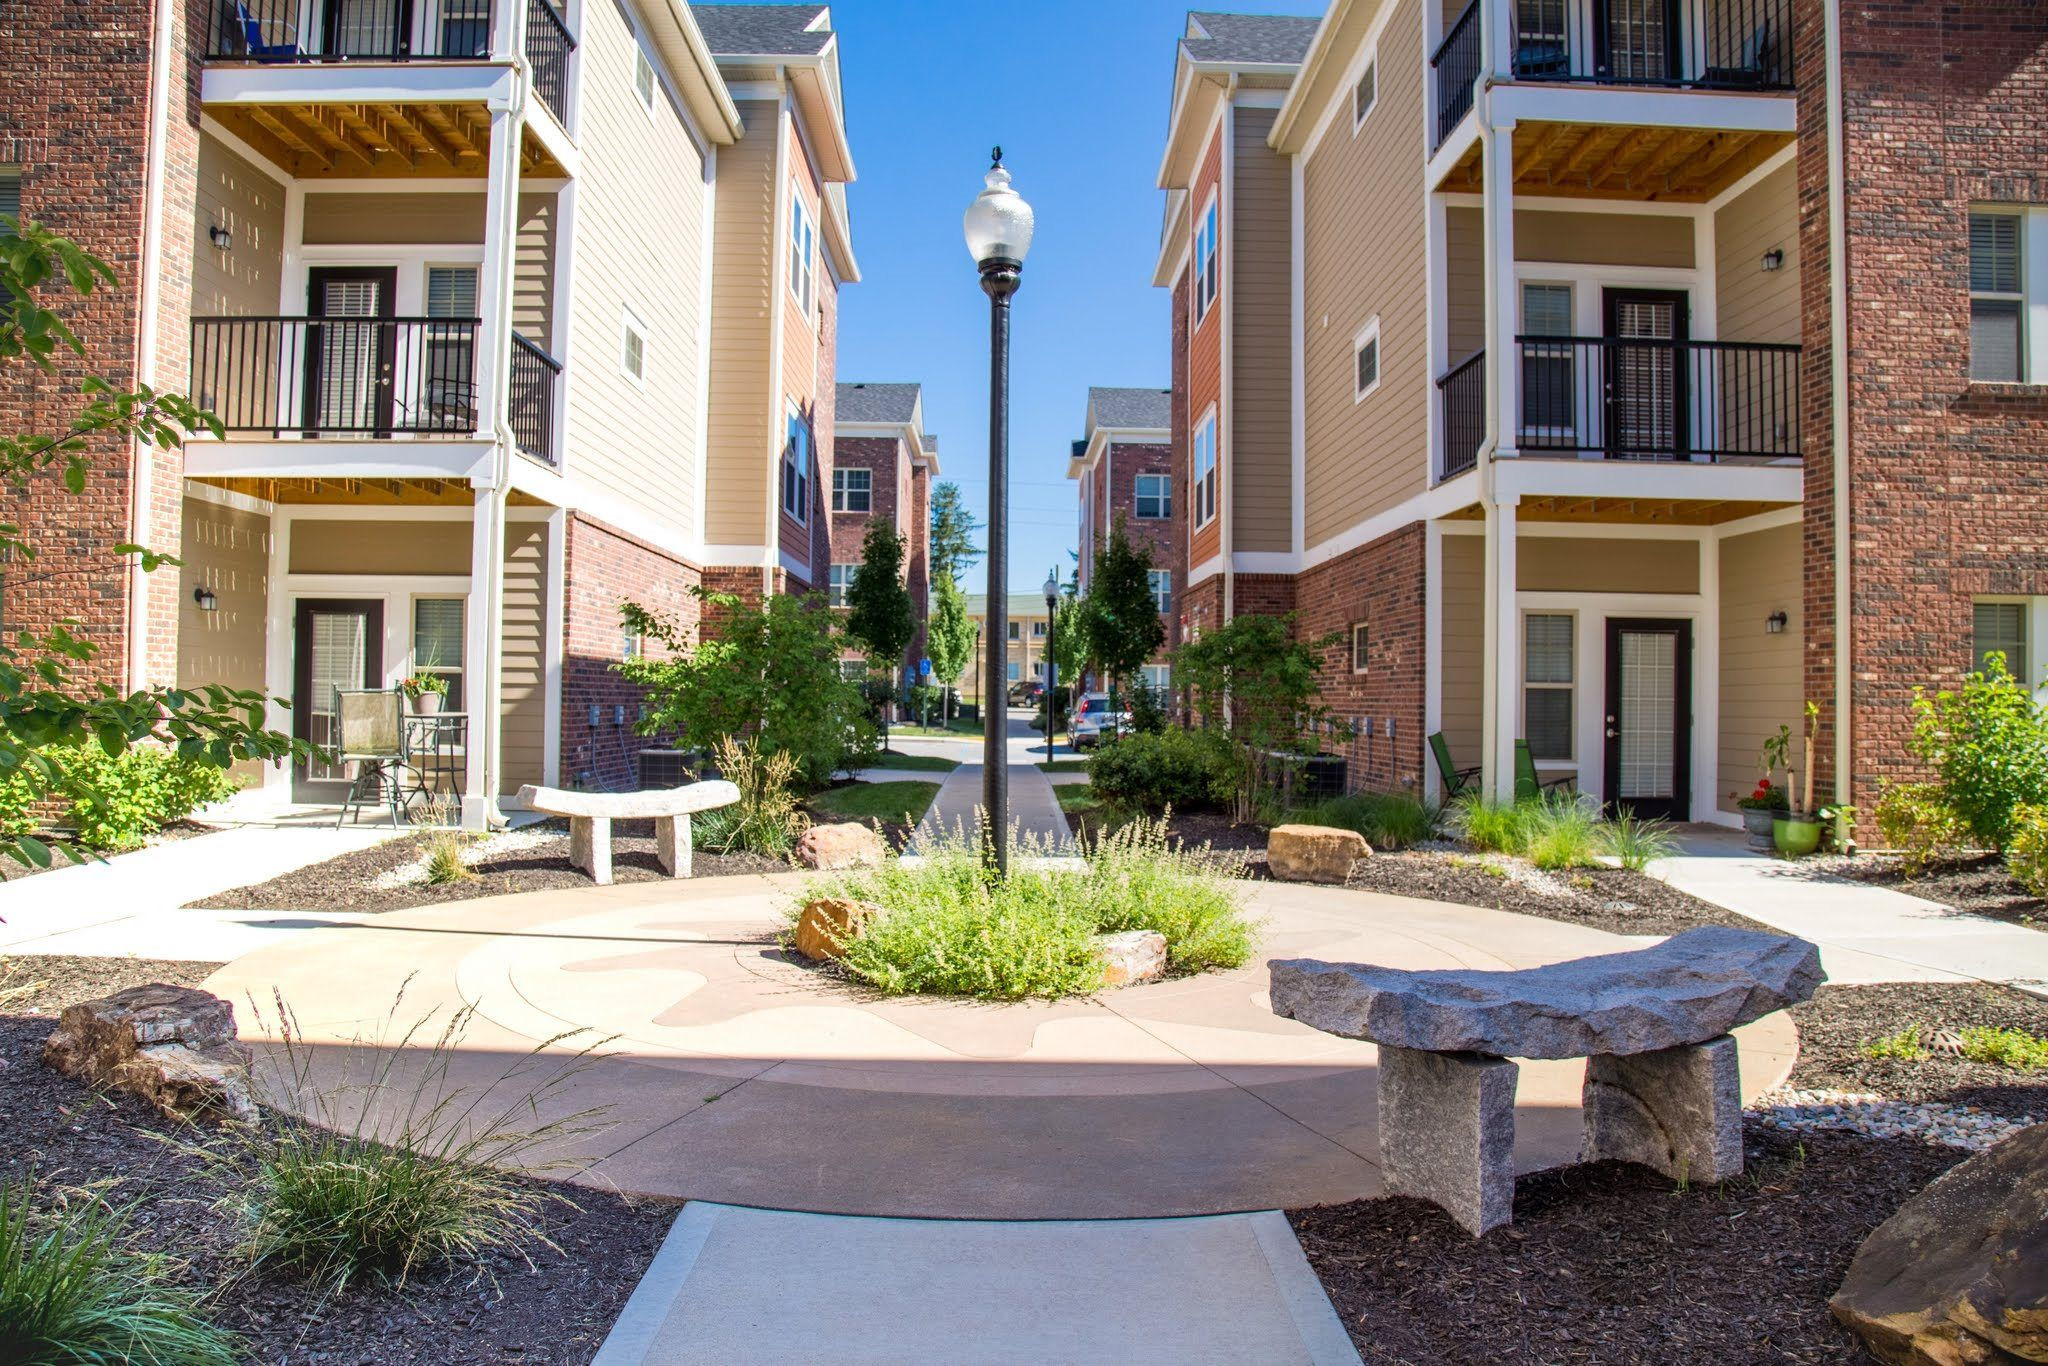 Image Result For Curb Appeal Apartment Complexes Indianapolis Apartments Apartment Apartment Complexes